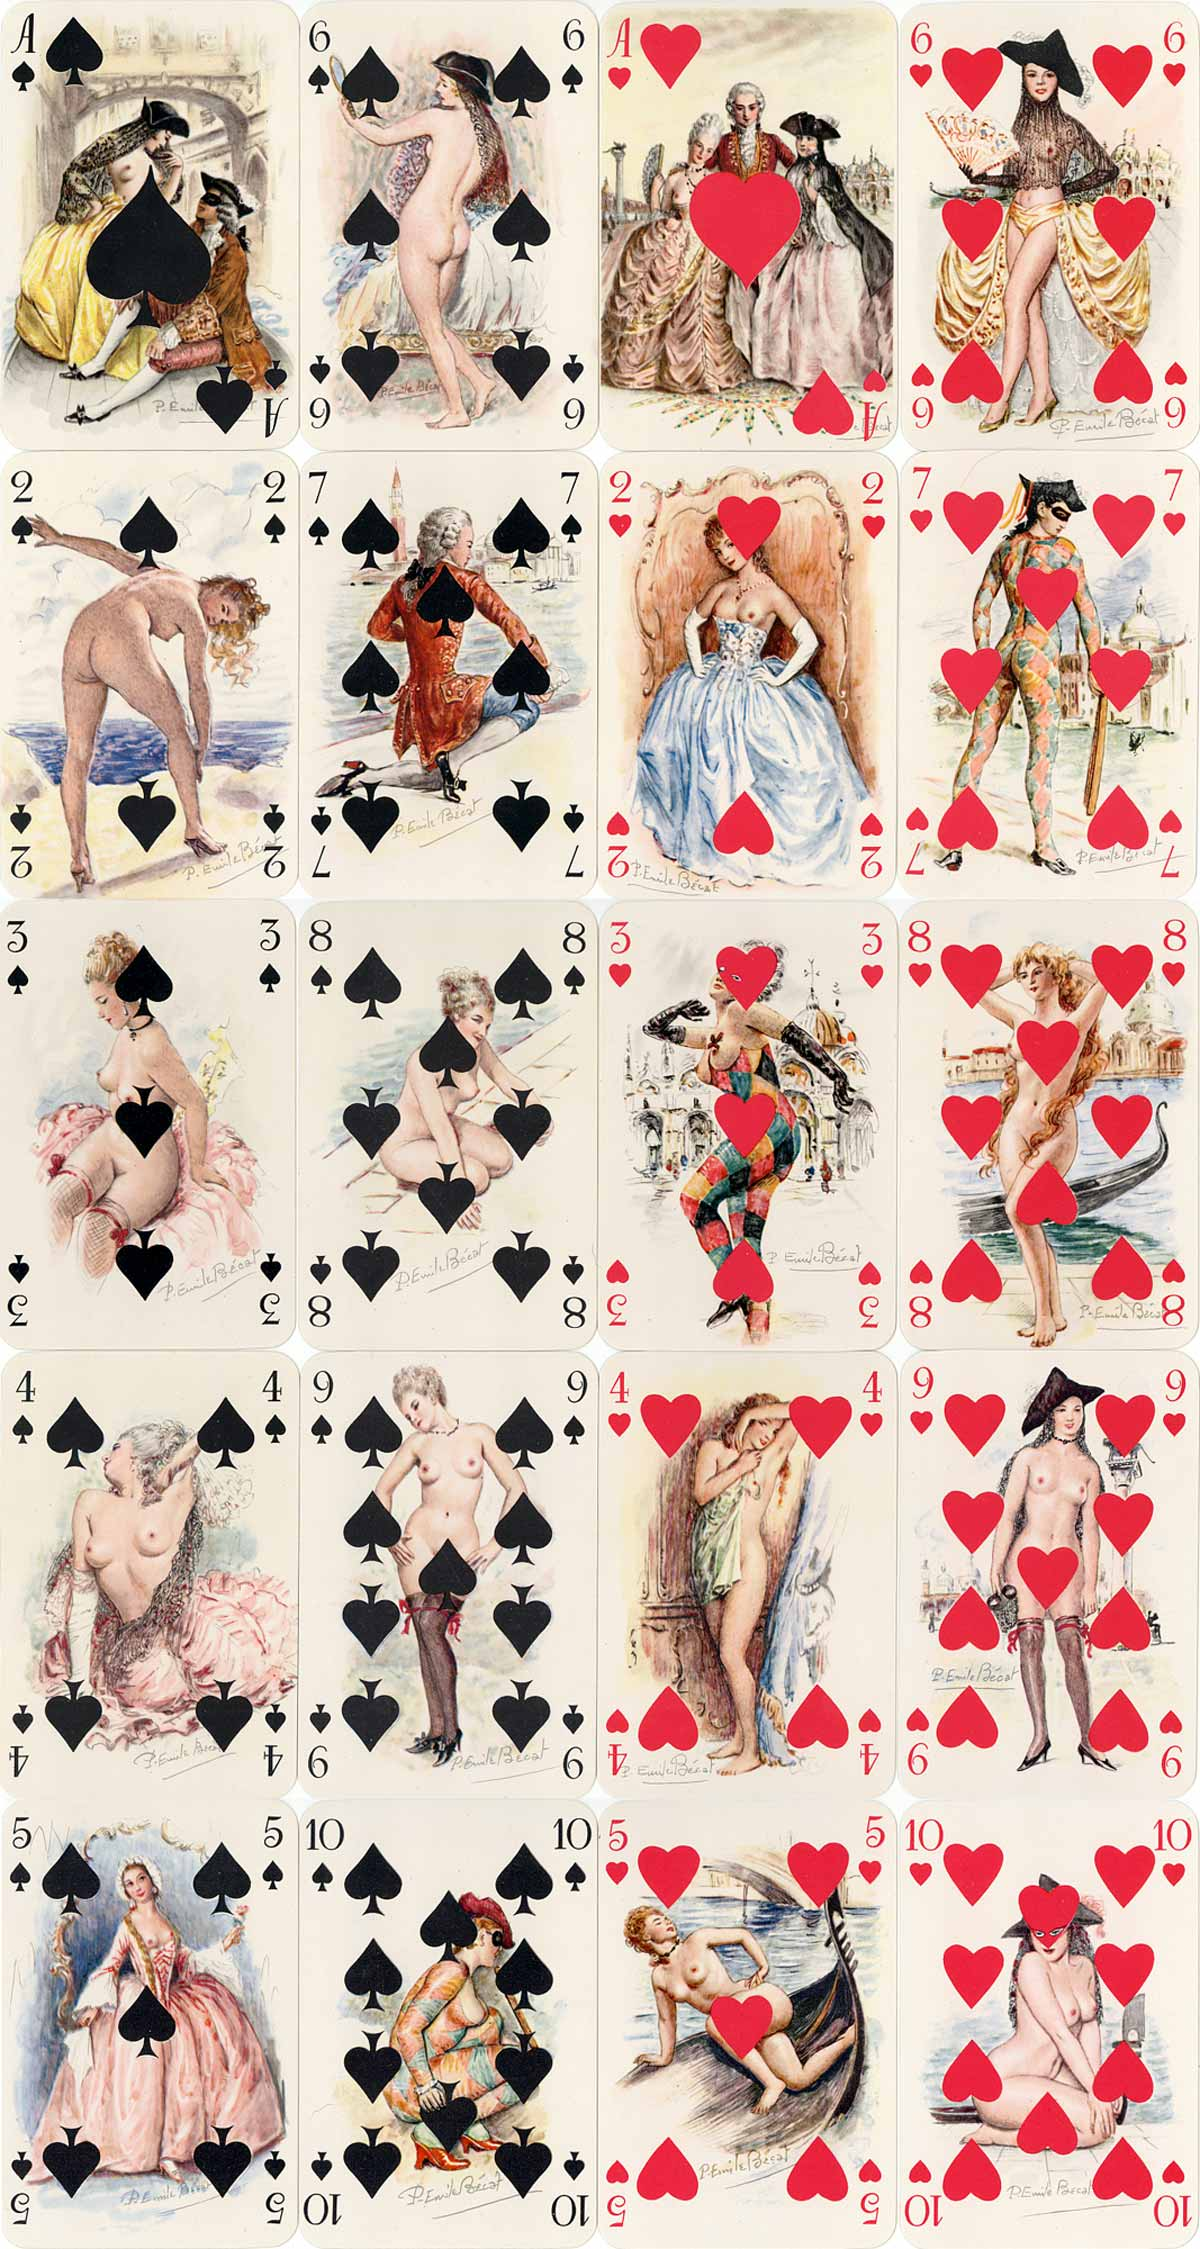 Erotic playing cards